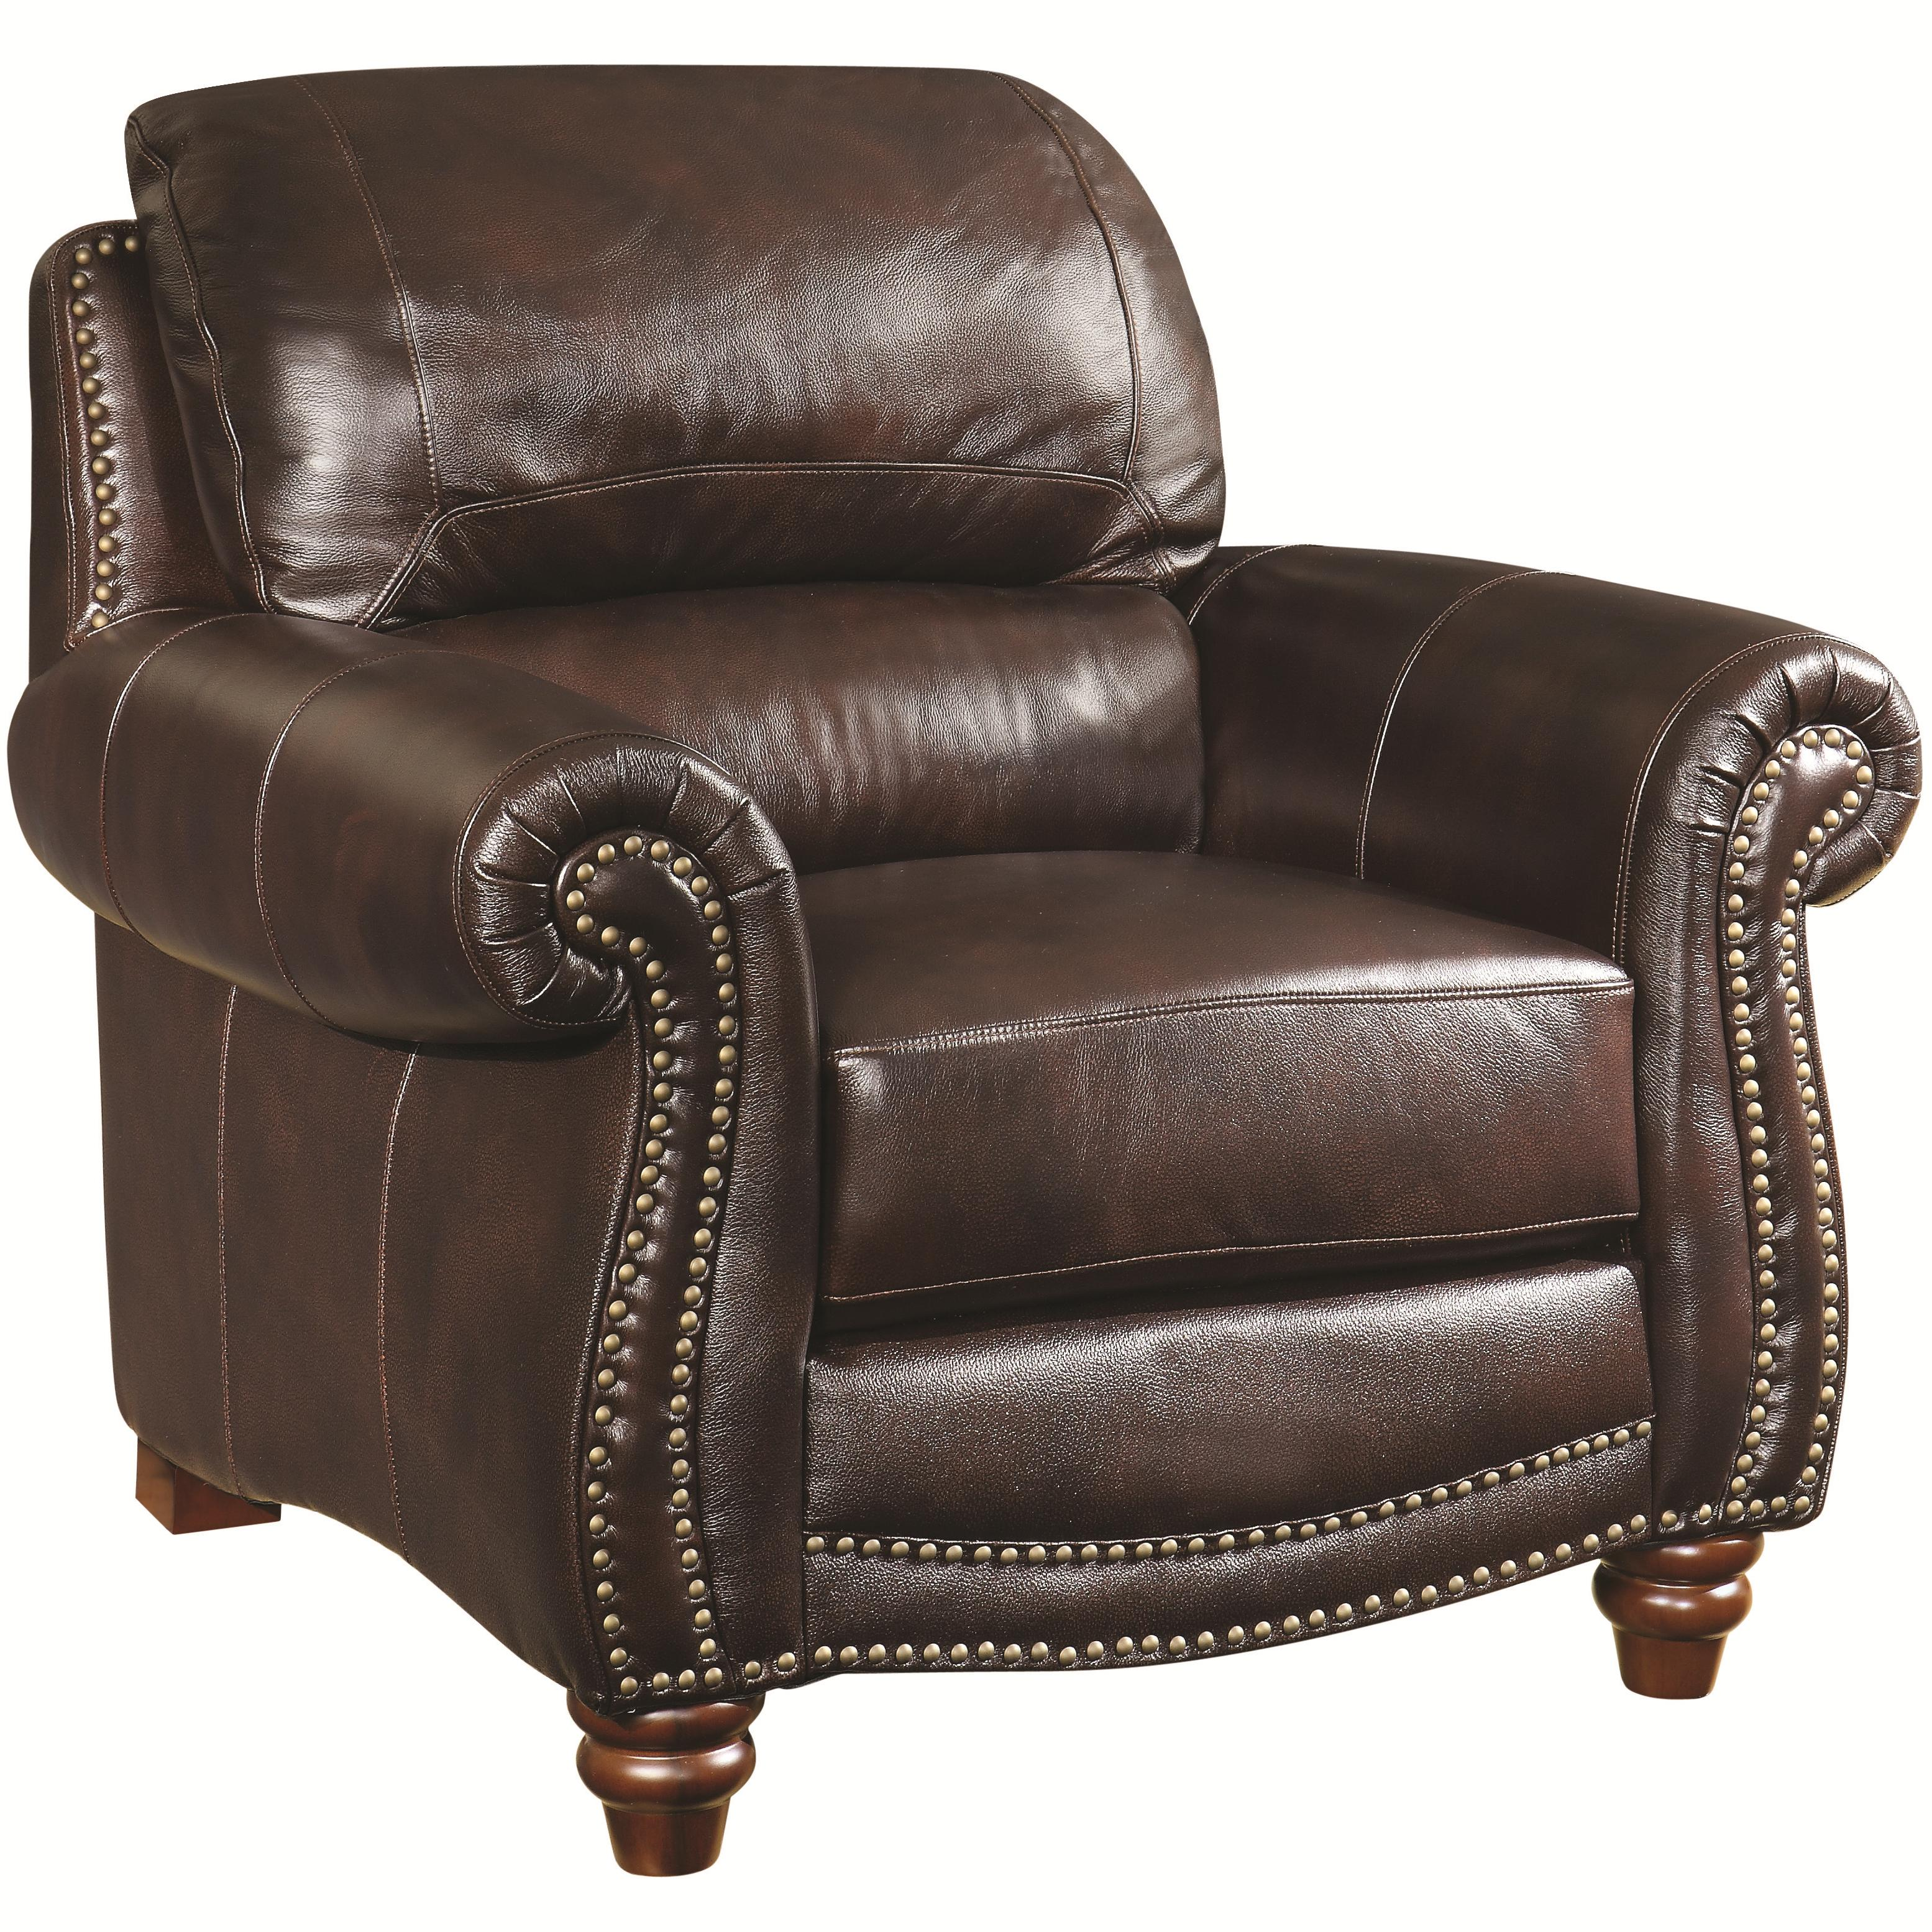 Coaster Lockhart Traditional Chair - Item Number: 504693